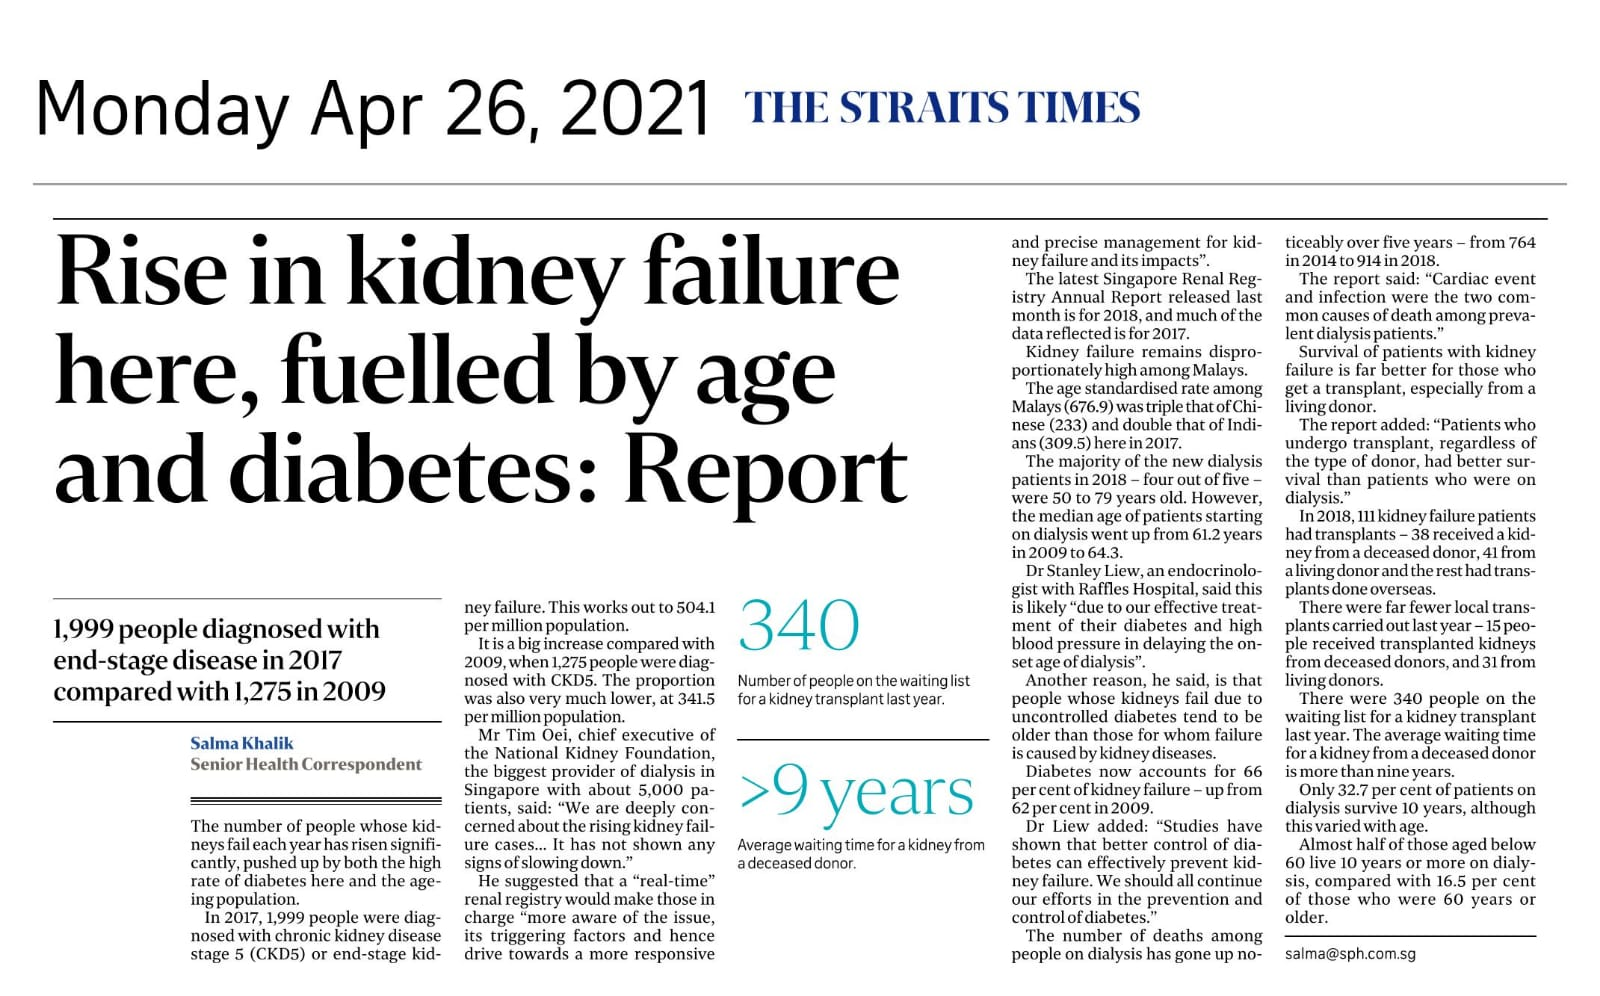 Rise in kidney failure here, fuelled by age and diabetes: Report - Published in The Straits Times Apr 26, 2021